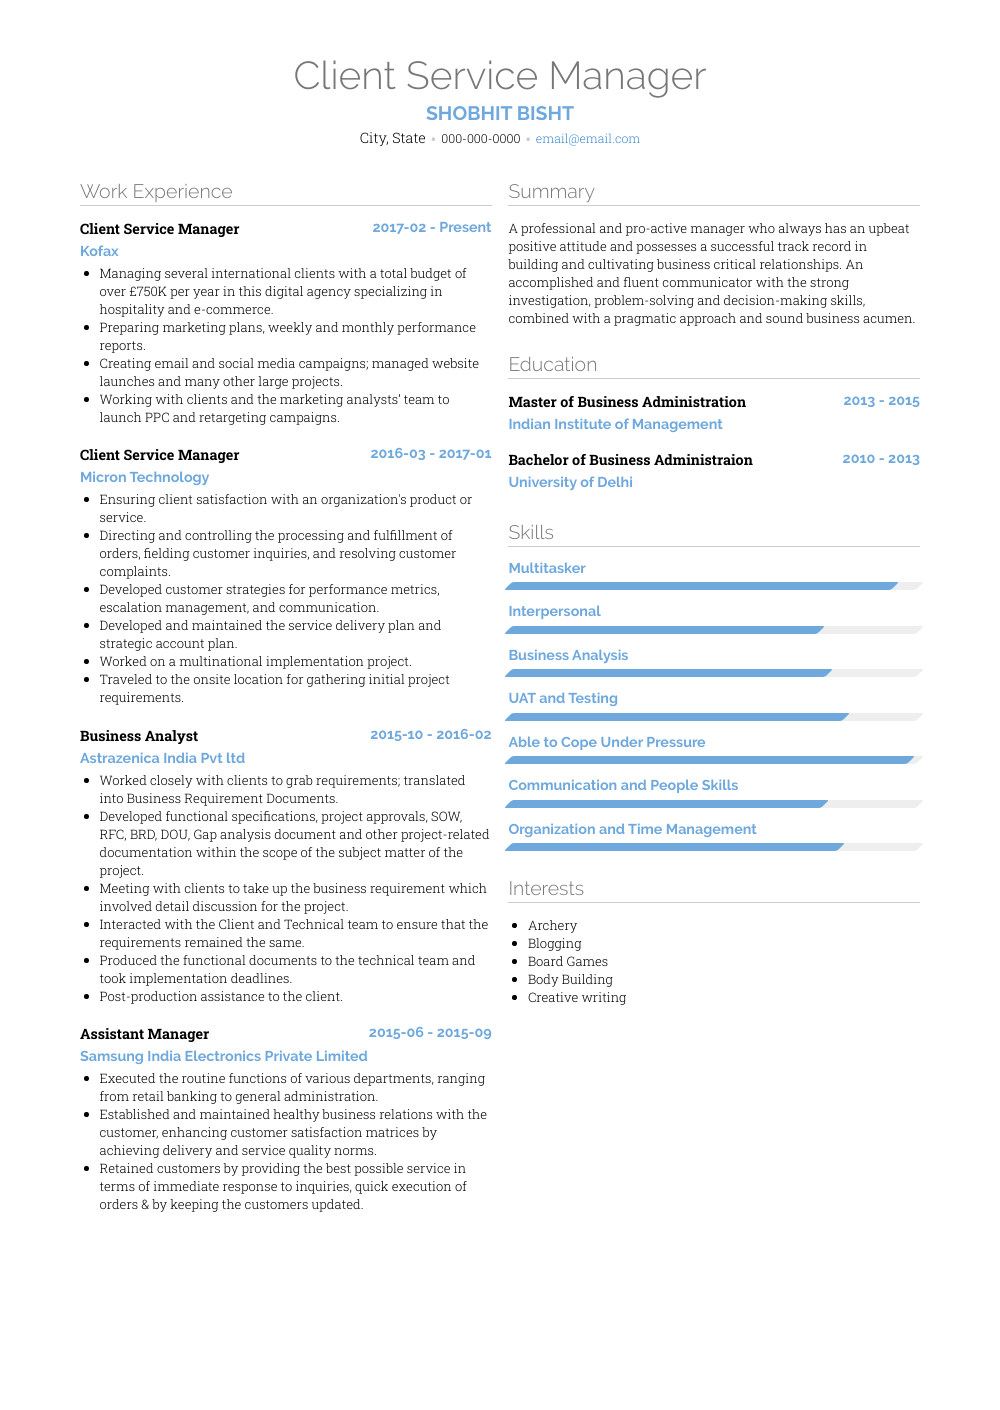 Client Service Manager Resume Sample and Template